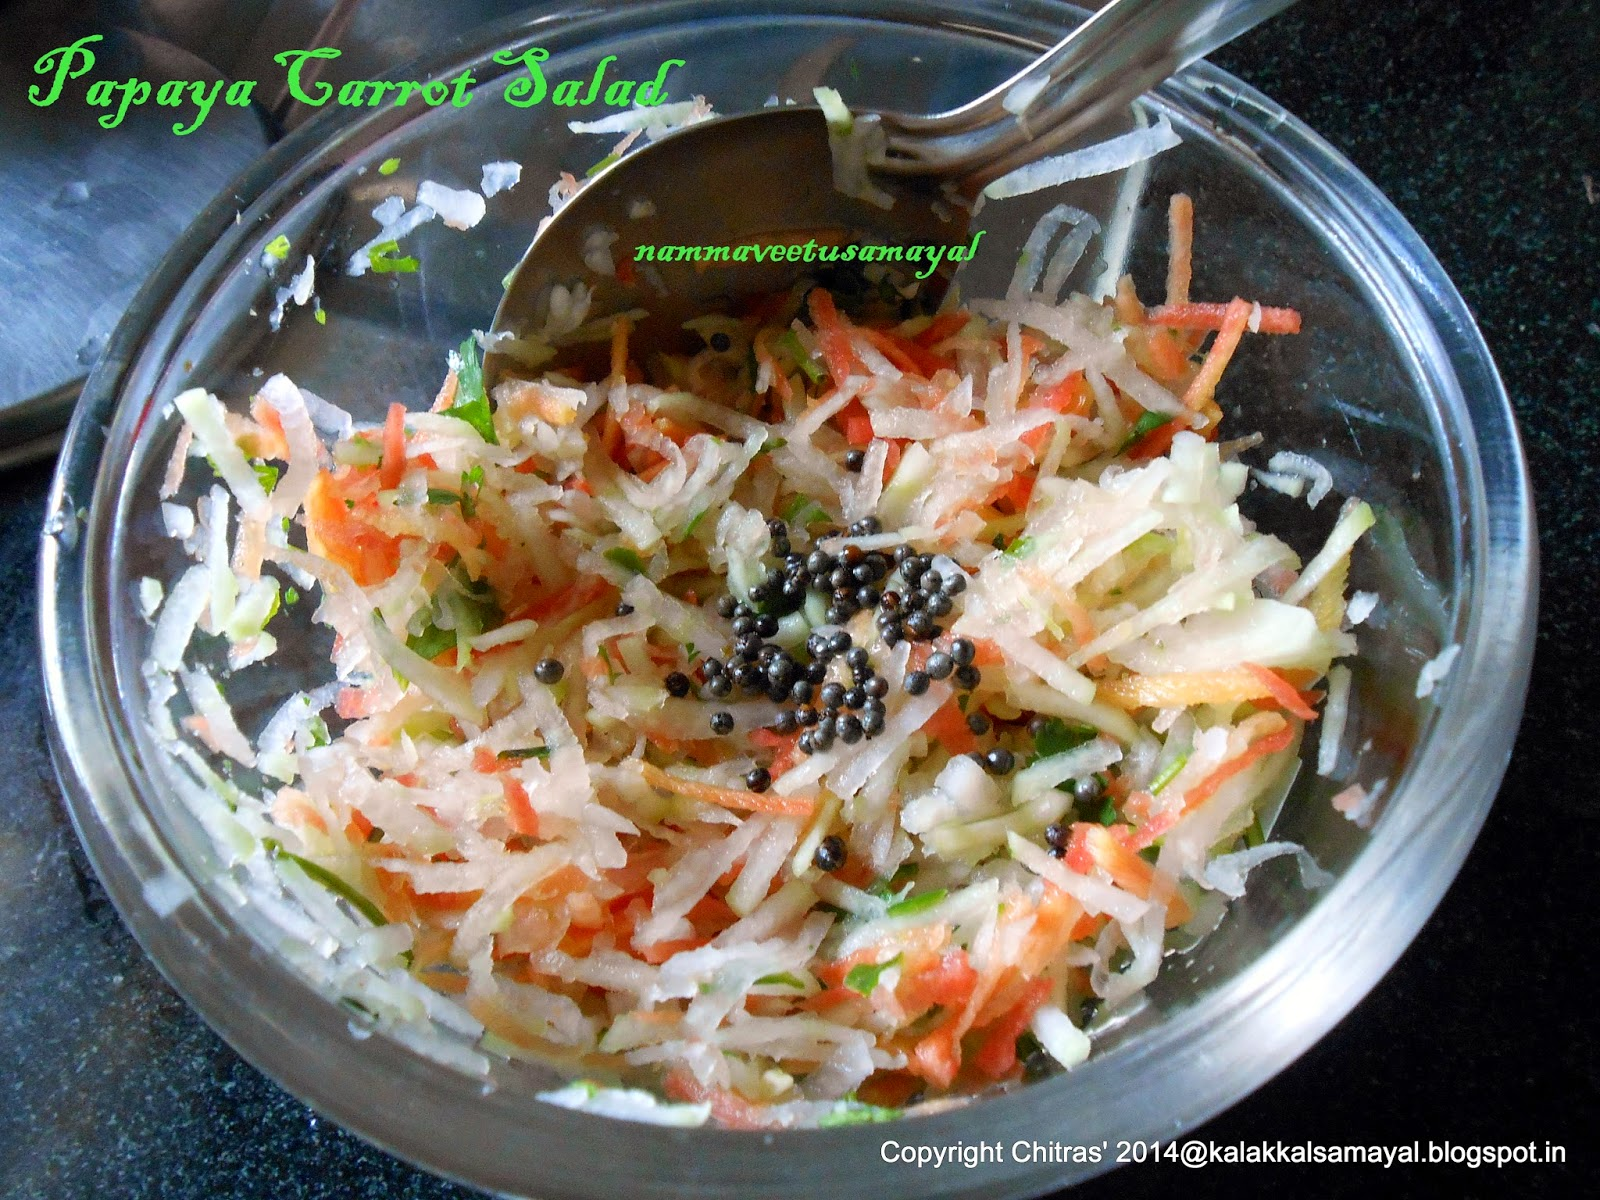 Papaya Carrot Salad